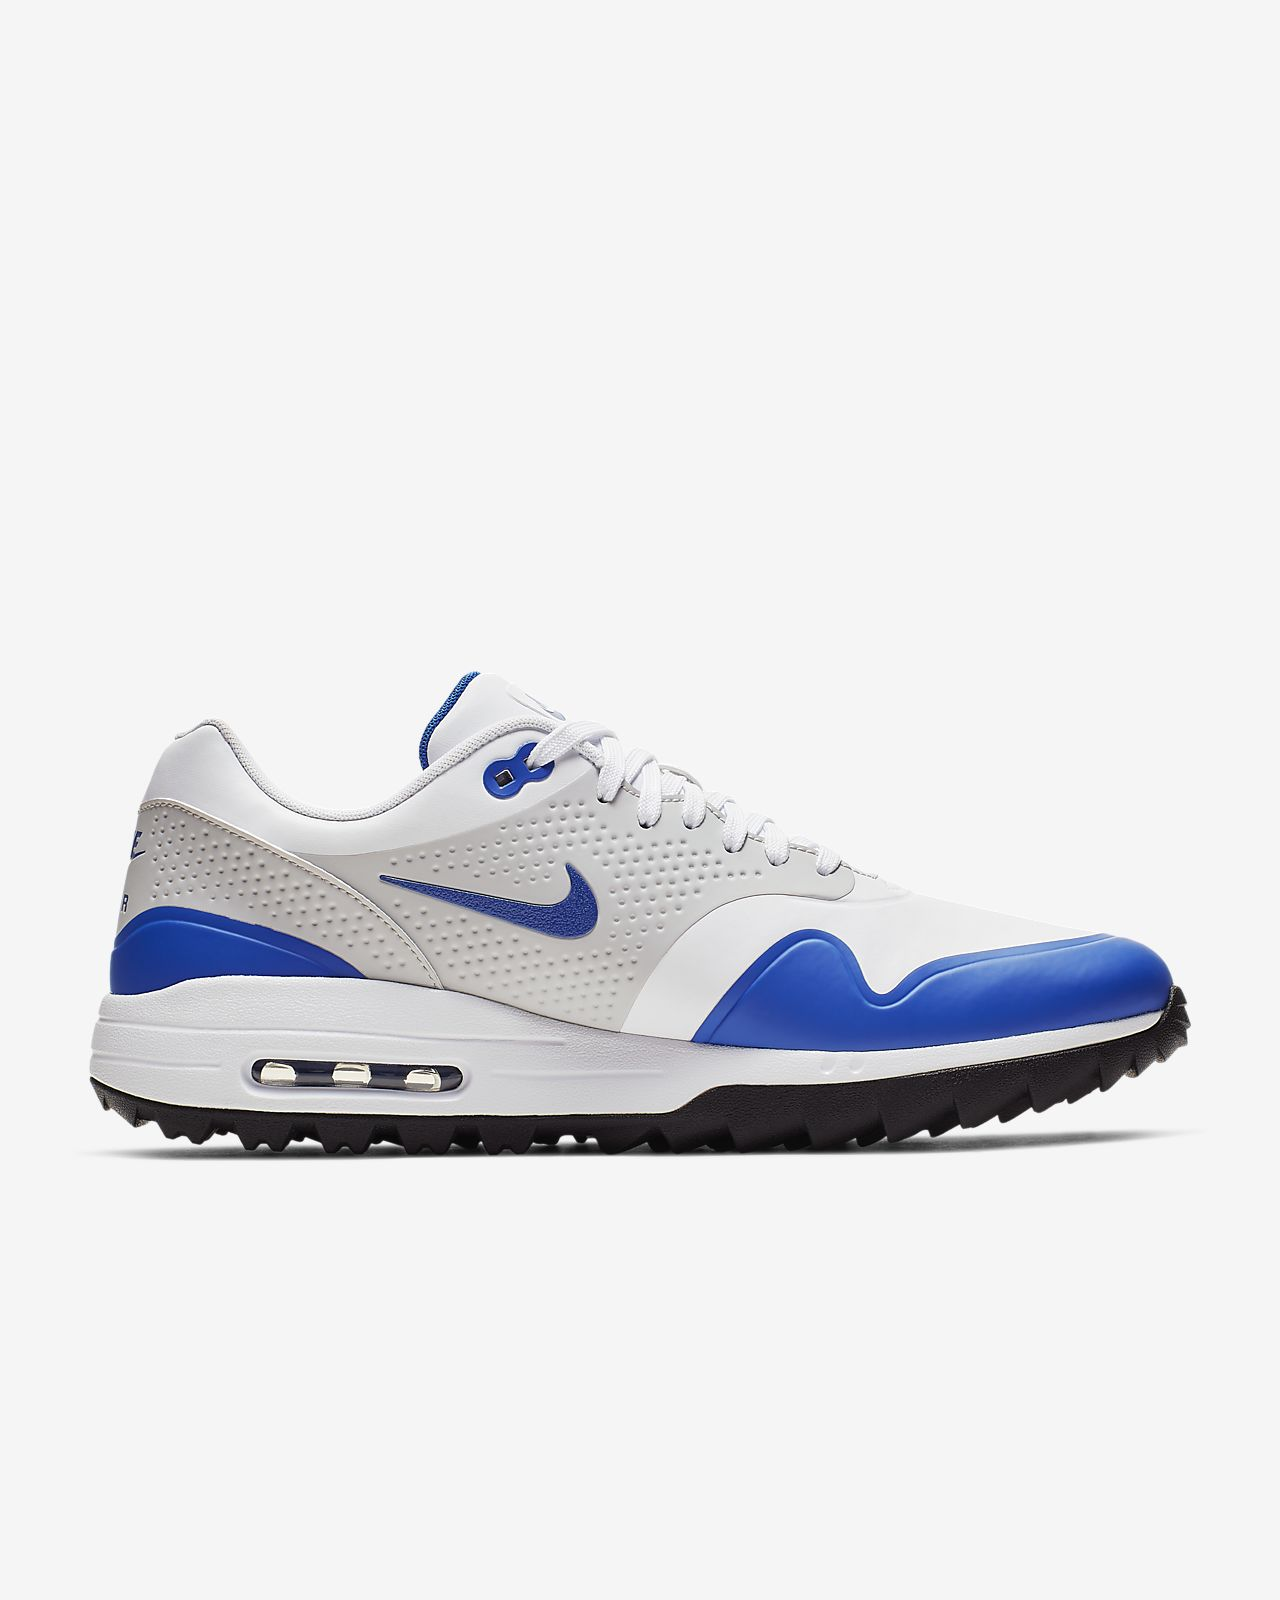 promo code 93d92 57cc2 ... Nike Air Max 1 G Men s Golf Shoe